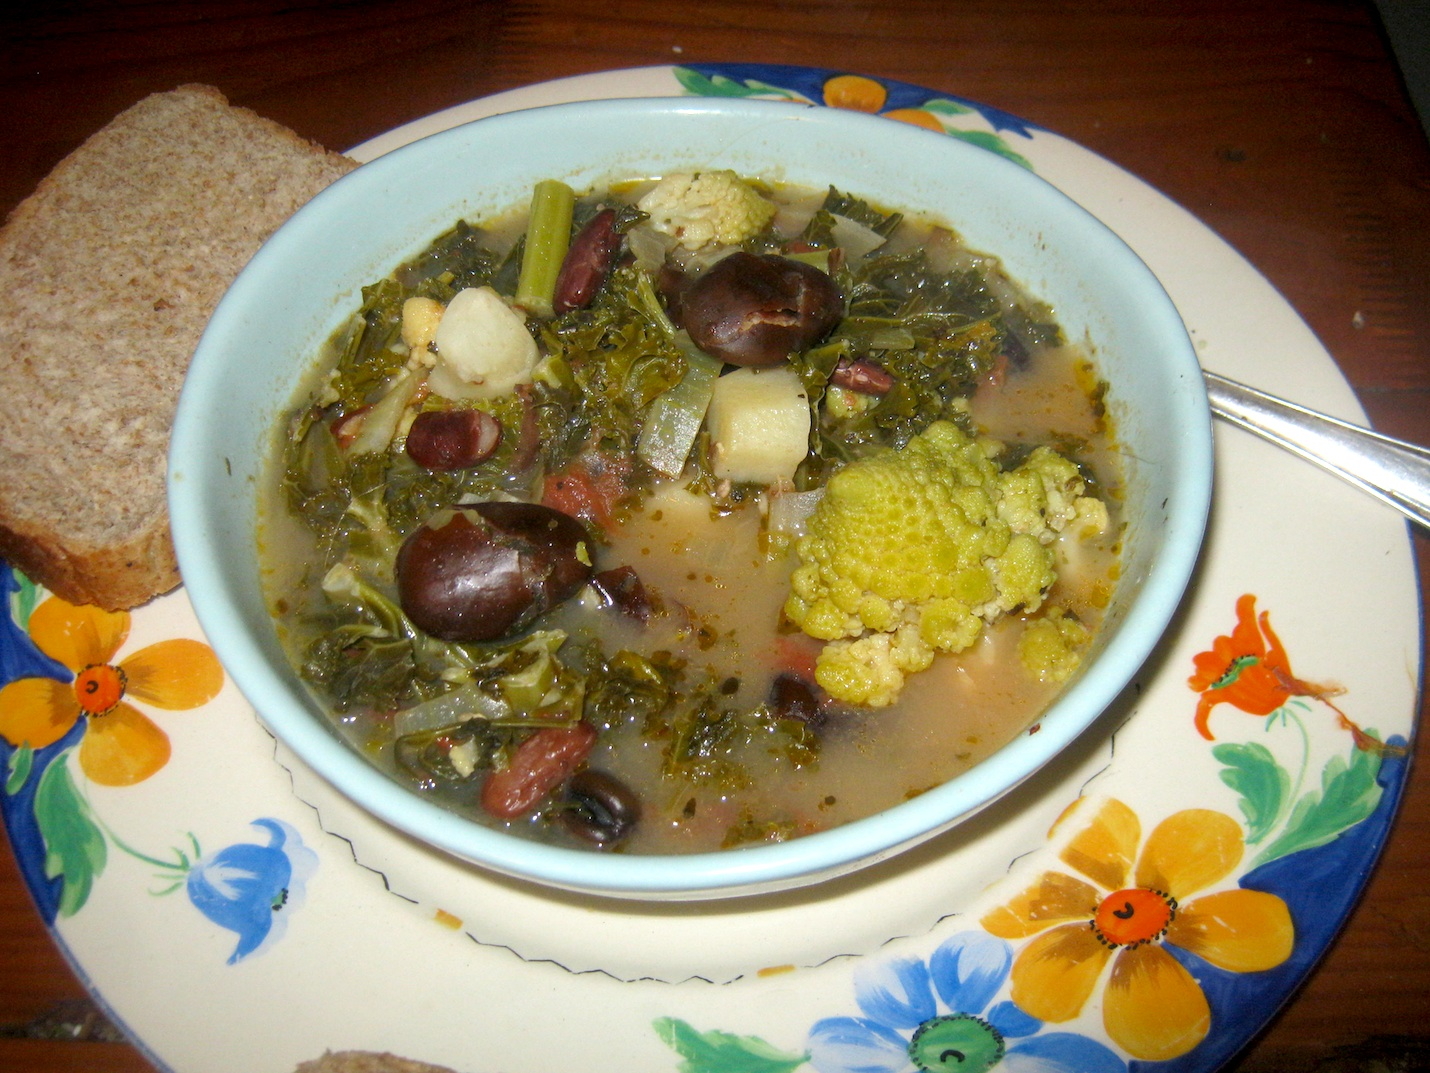 Kale and bean soup served in a bowl